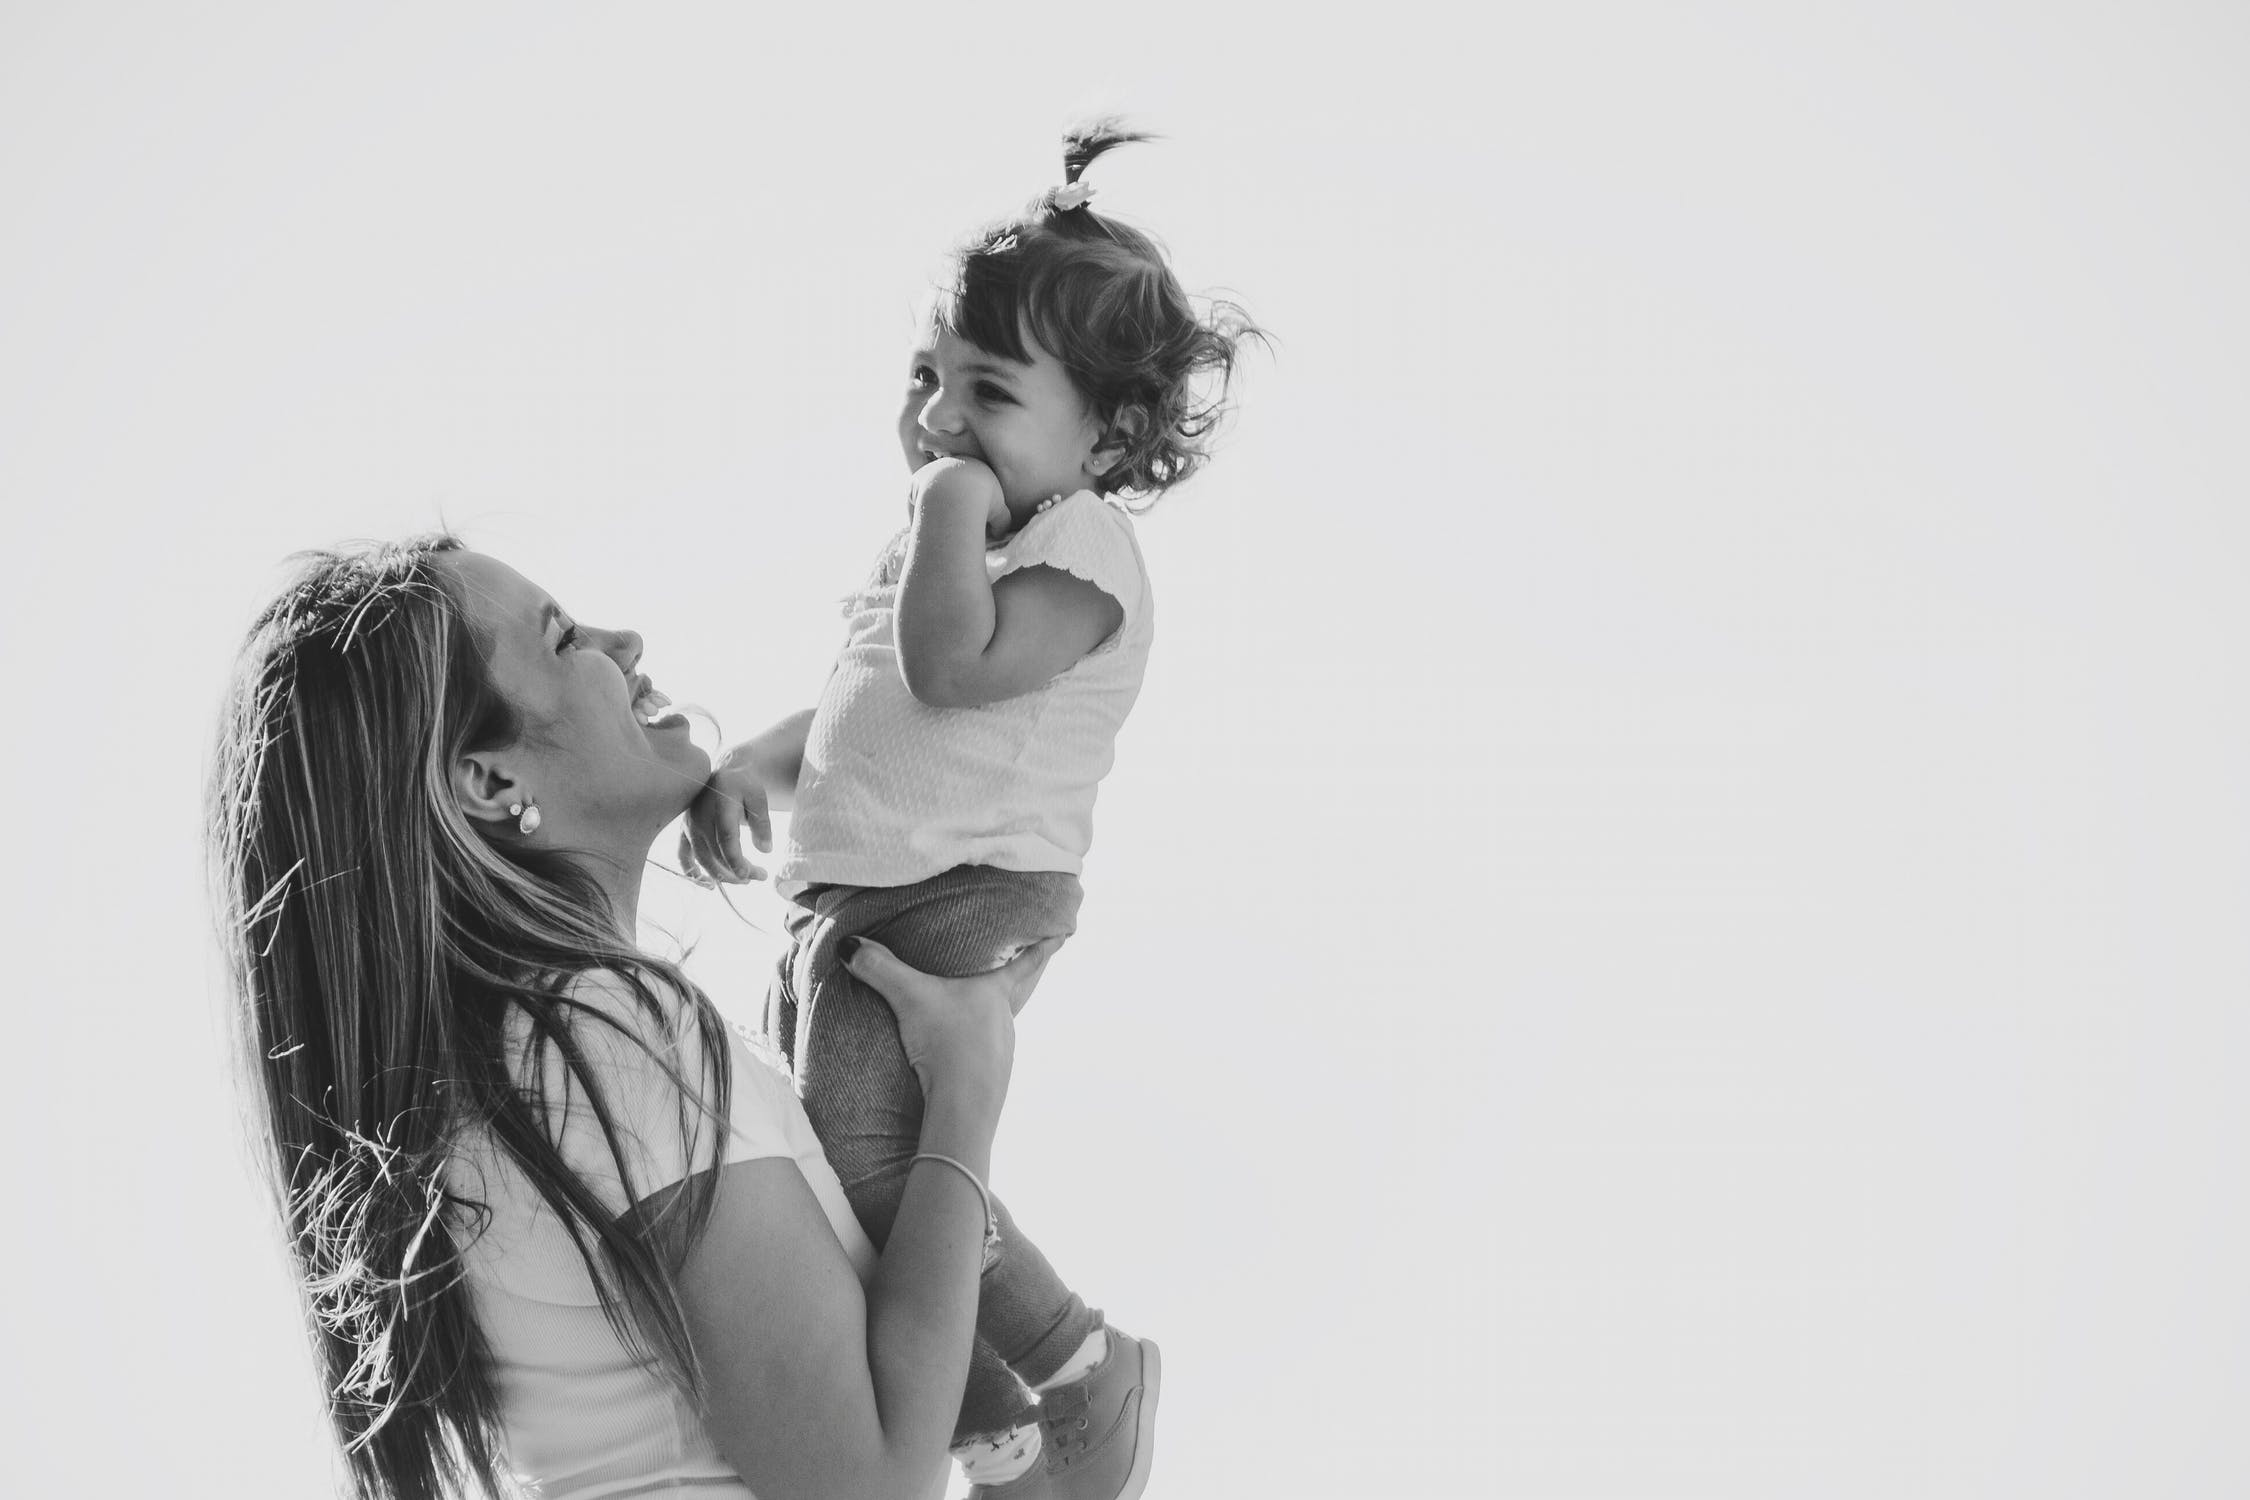 5 Best Gifts for New Mothers